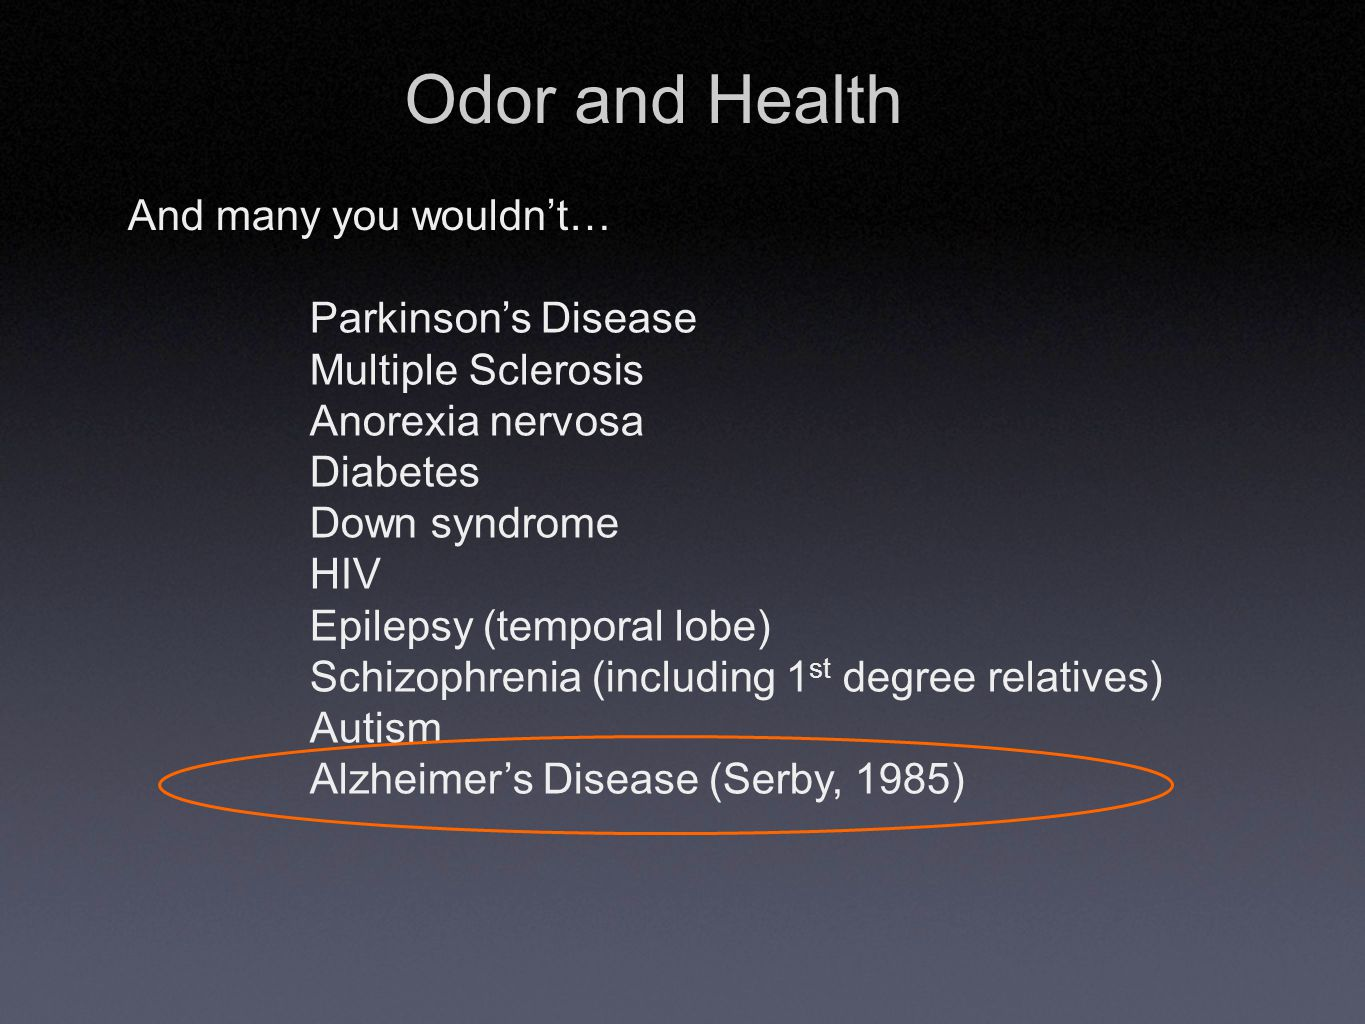 Odor and Health And many you wouldn't… Parkinson's Disease Multiple Sclerosis Anorexia nervosa Diabetes Down syndrome HIV Epilepsy (temporal lobe) Schizophrenia (including 1 st degree relatives) Autism Alzheimer's Disease (Serby, 1985)